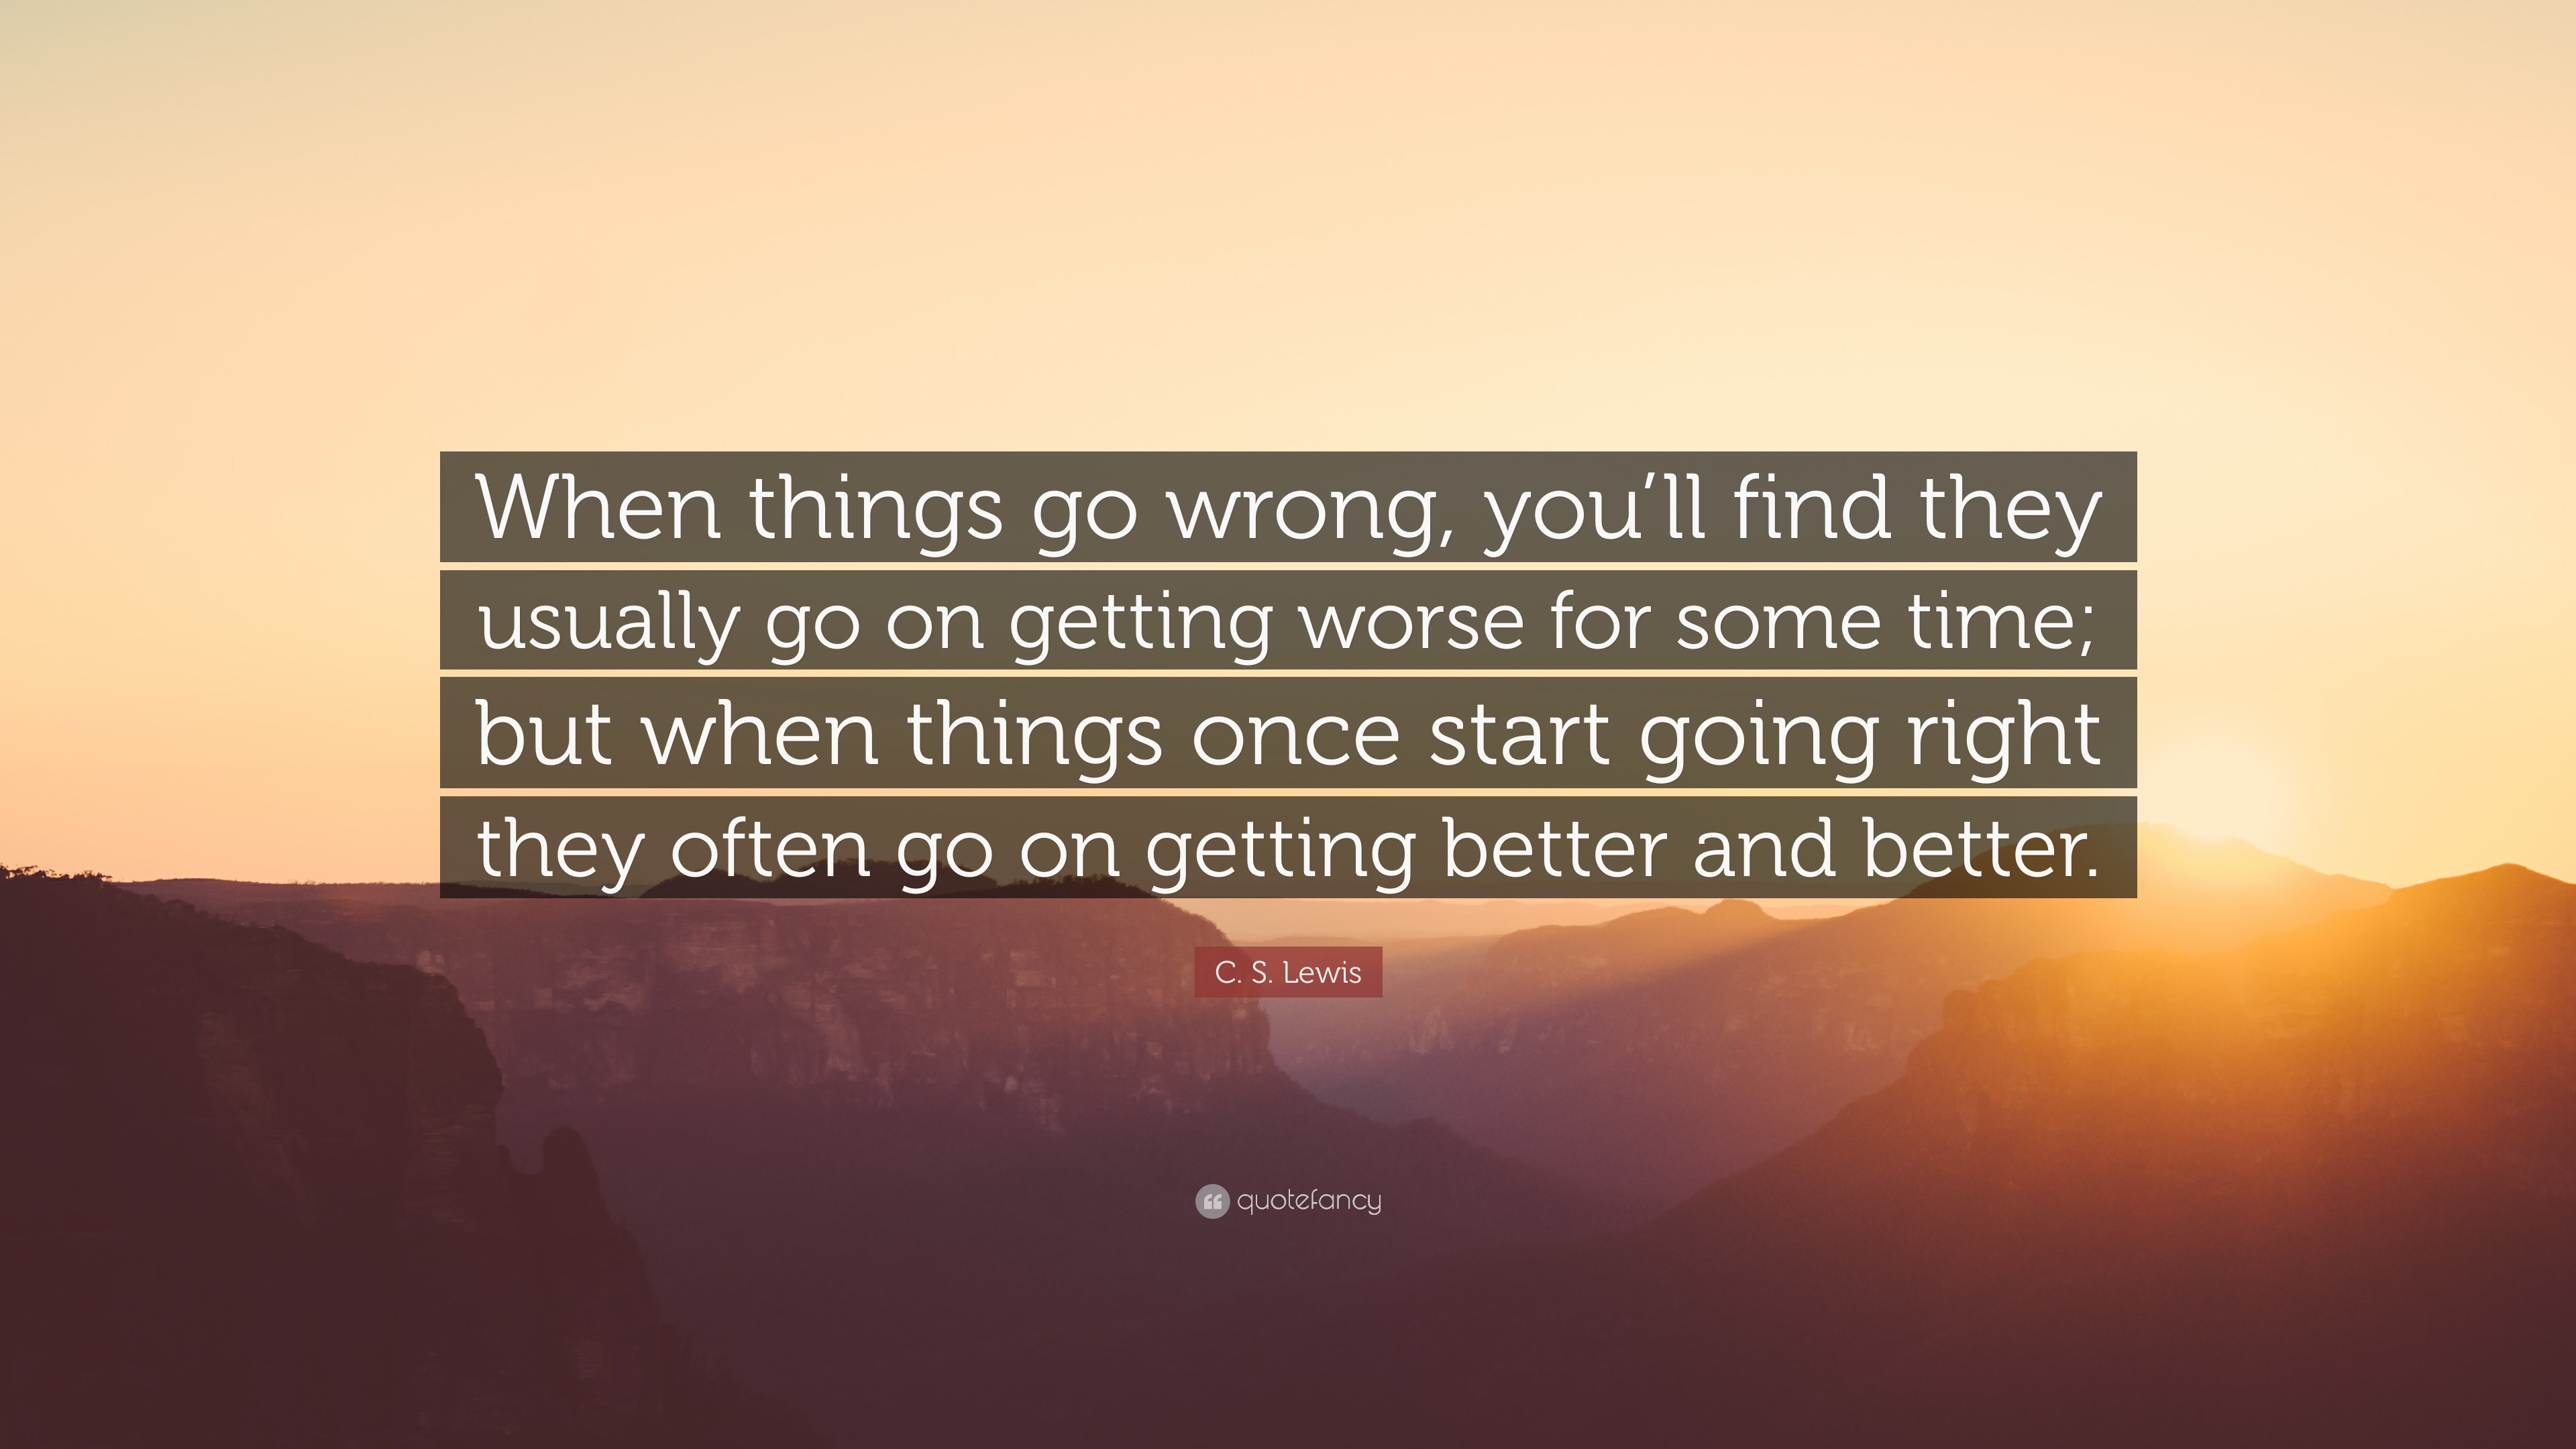 C S Lewis Quote When Things Go Wrong Youll Find They Usually